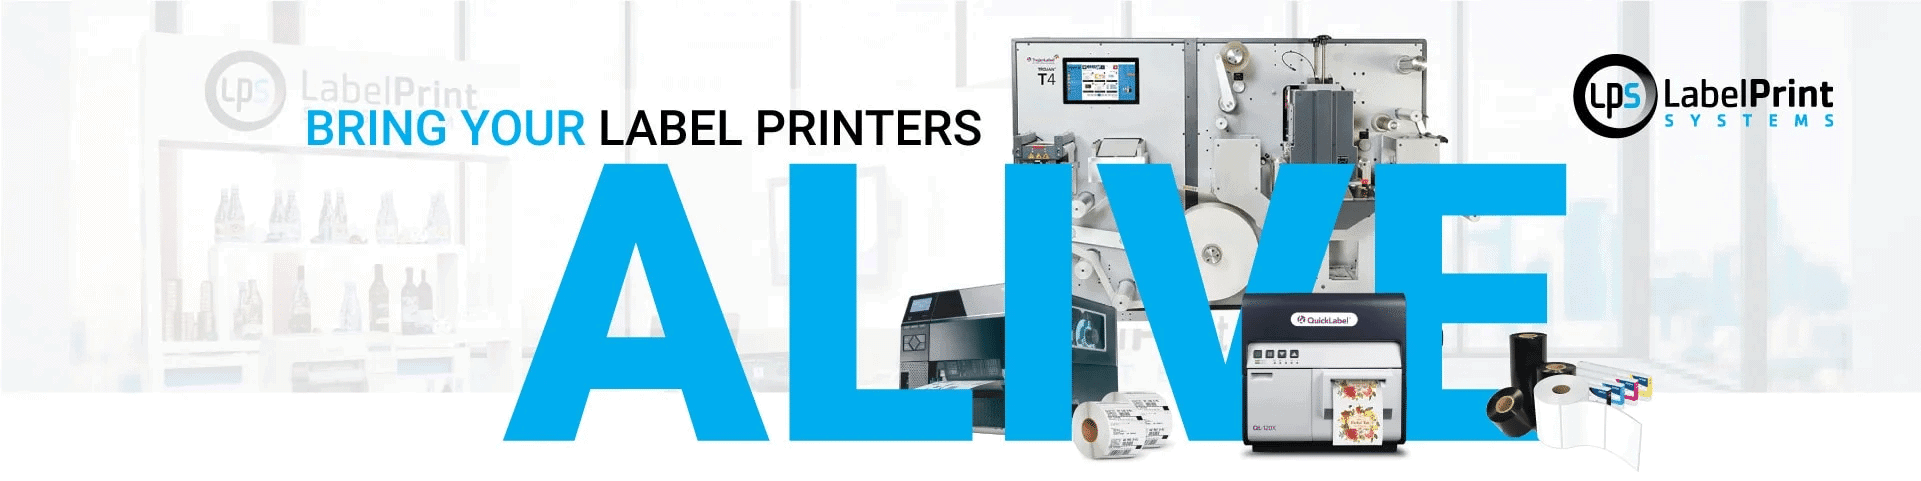 About Us LPS Printers ALIVE